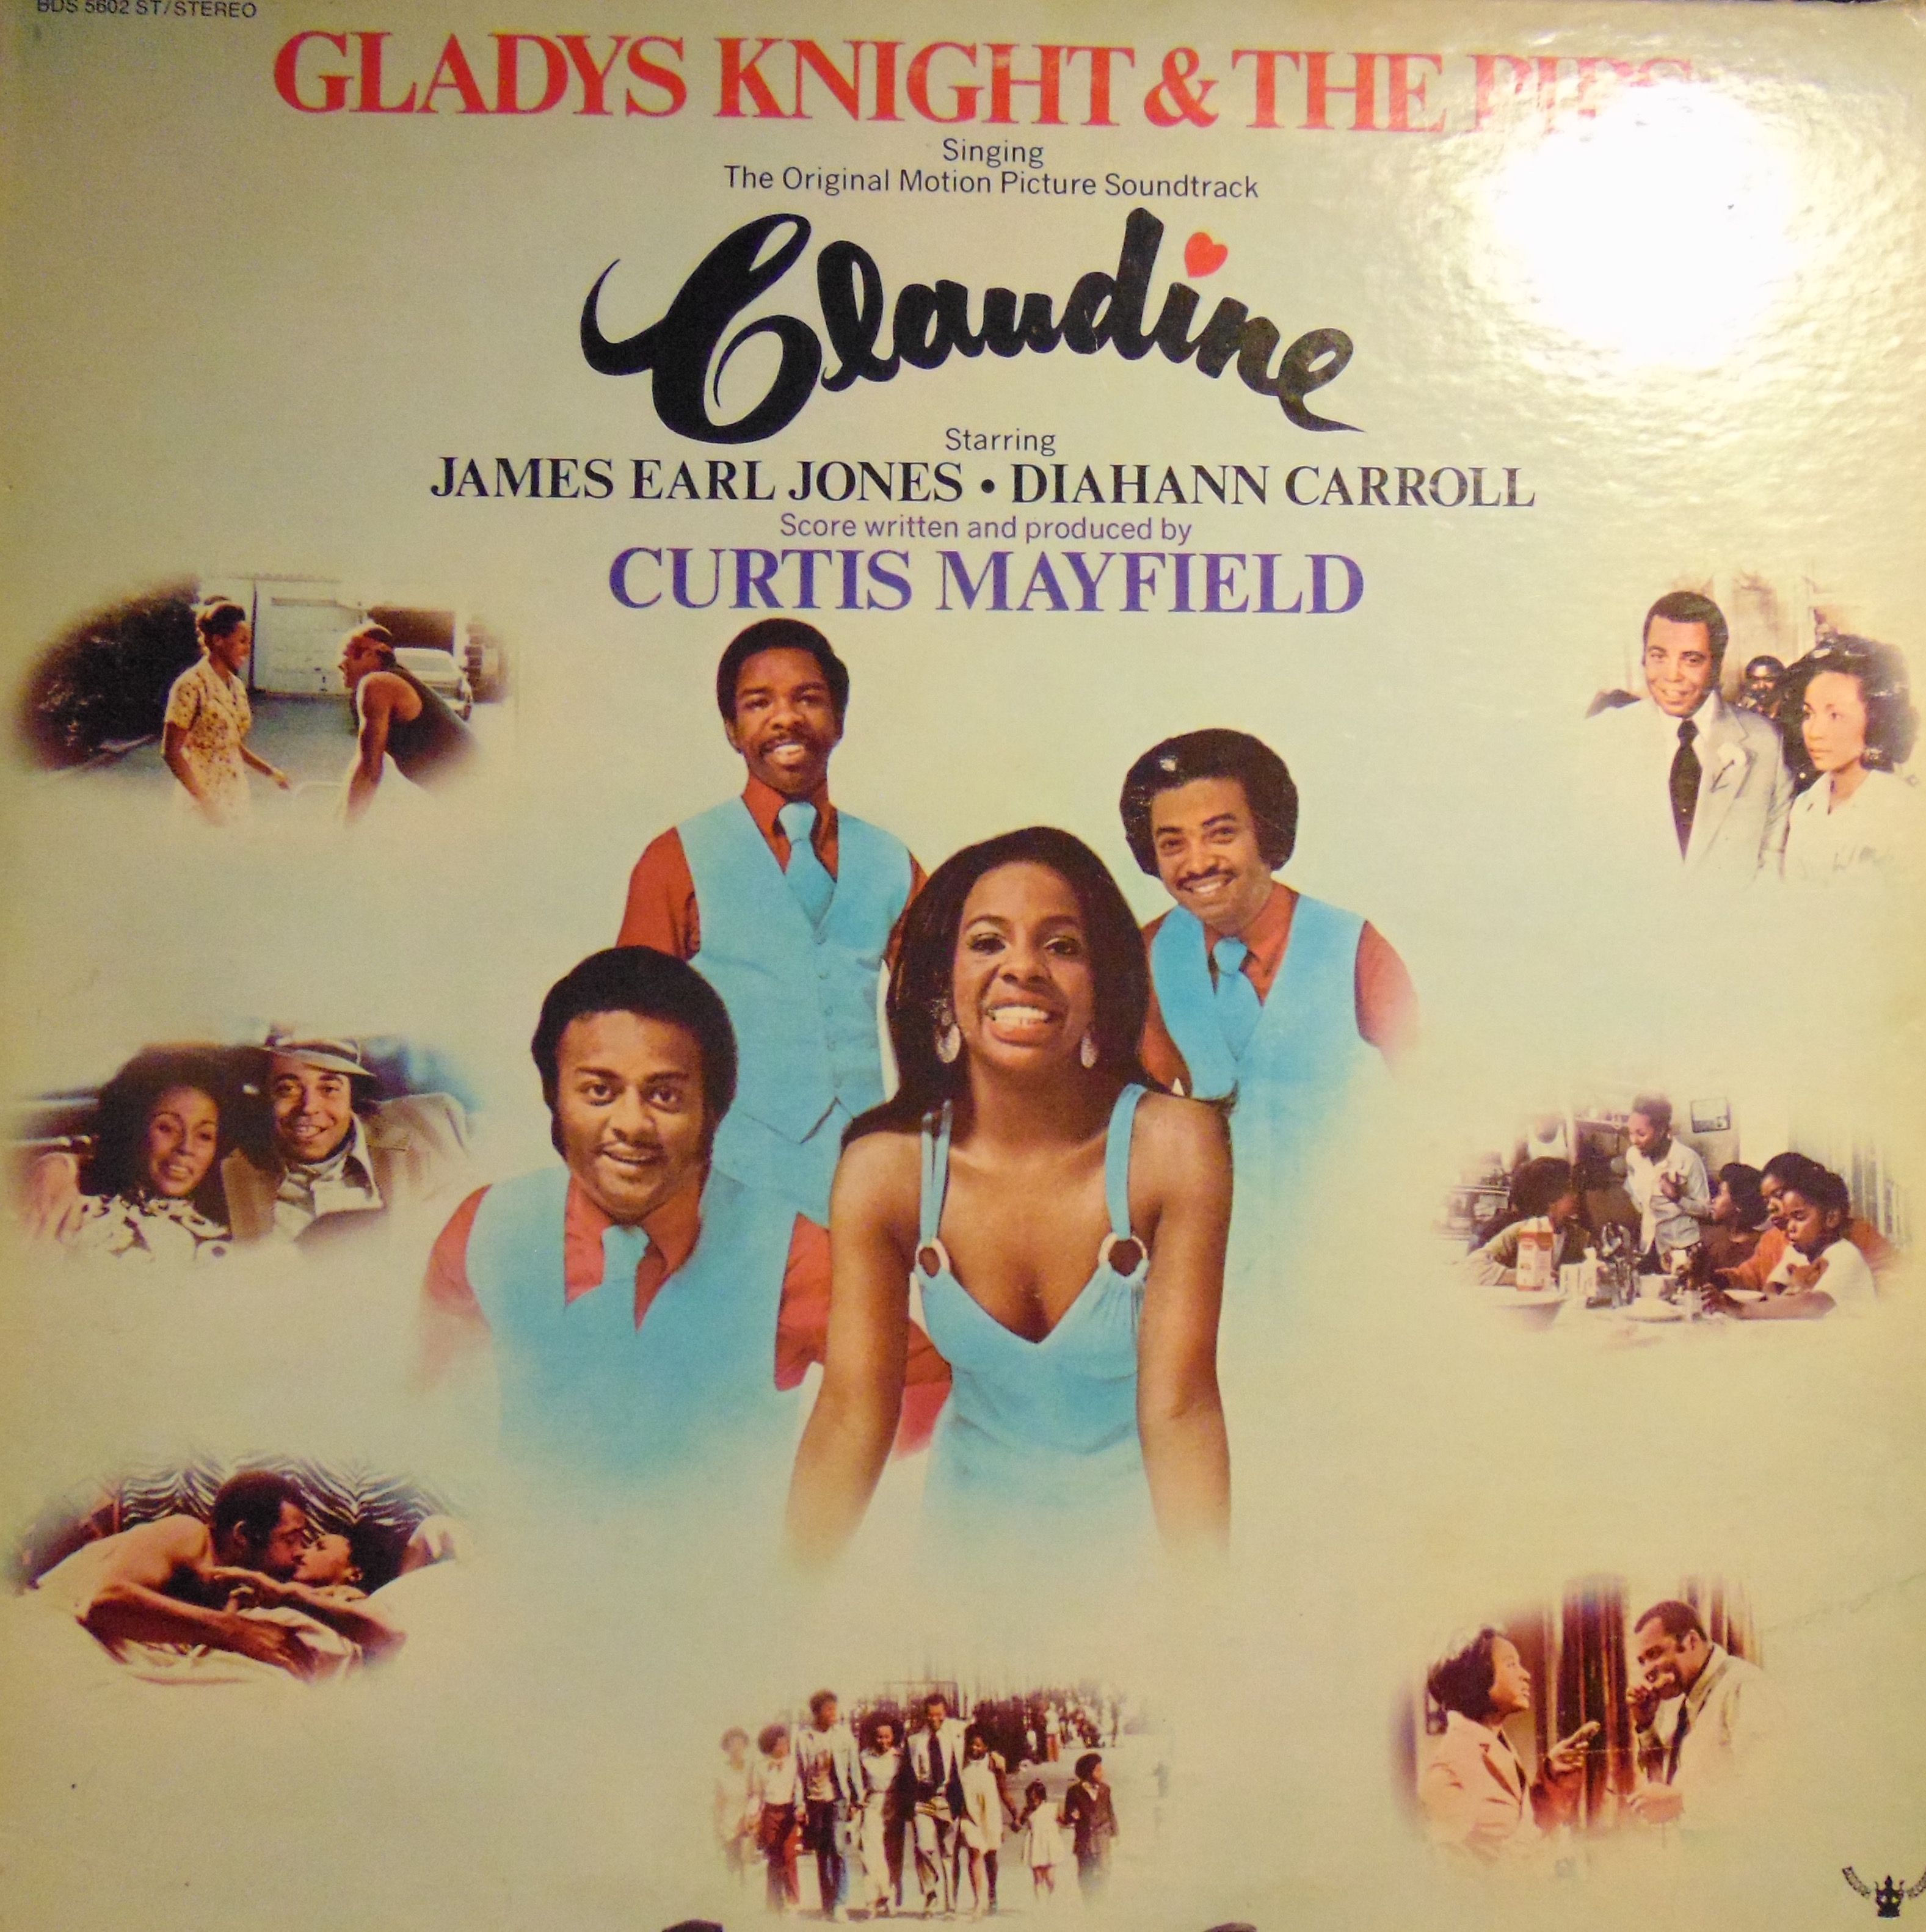 Gladys Knight And The Pips Claudine Vinyl Lp Curtis Mayfield Buddah In 2020 Gladys Knight Soundtrack Vinyl Records